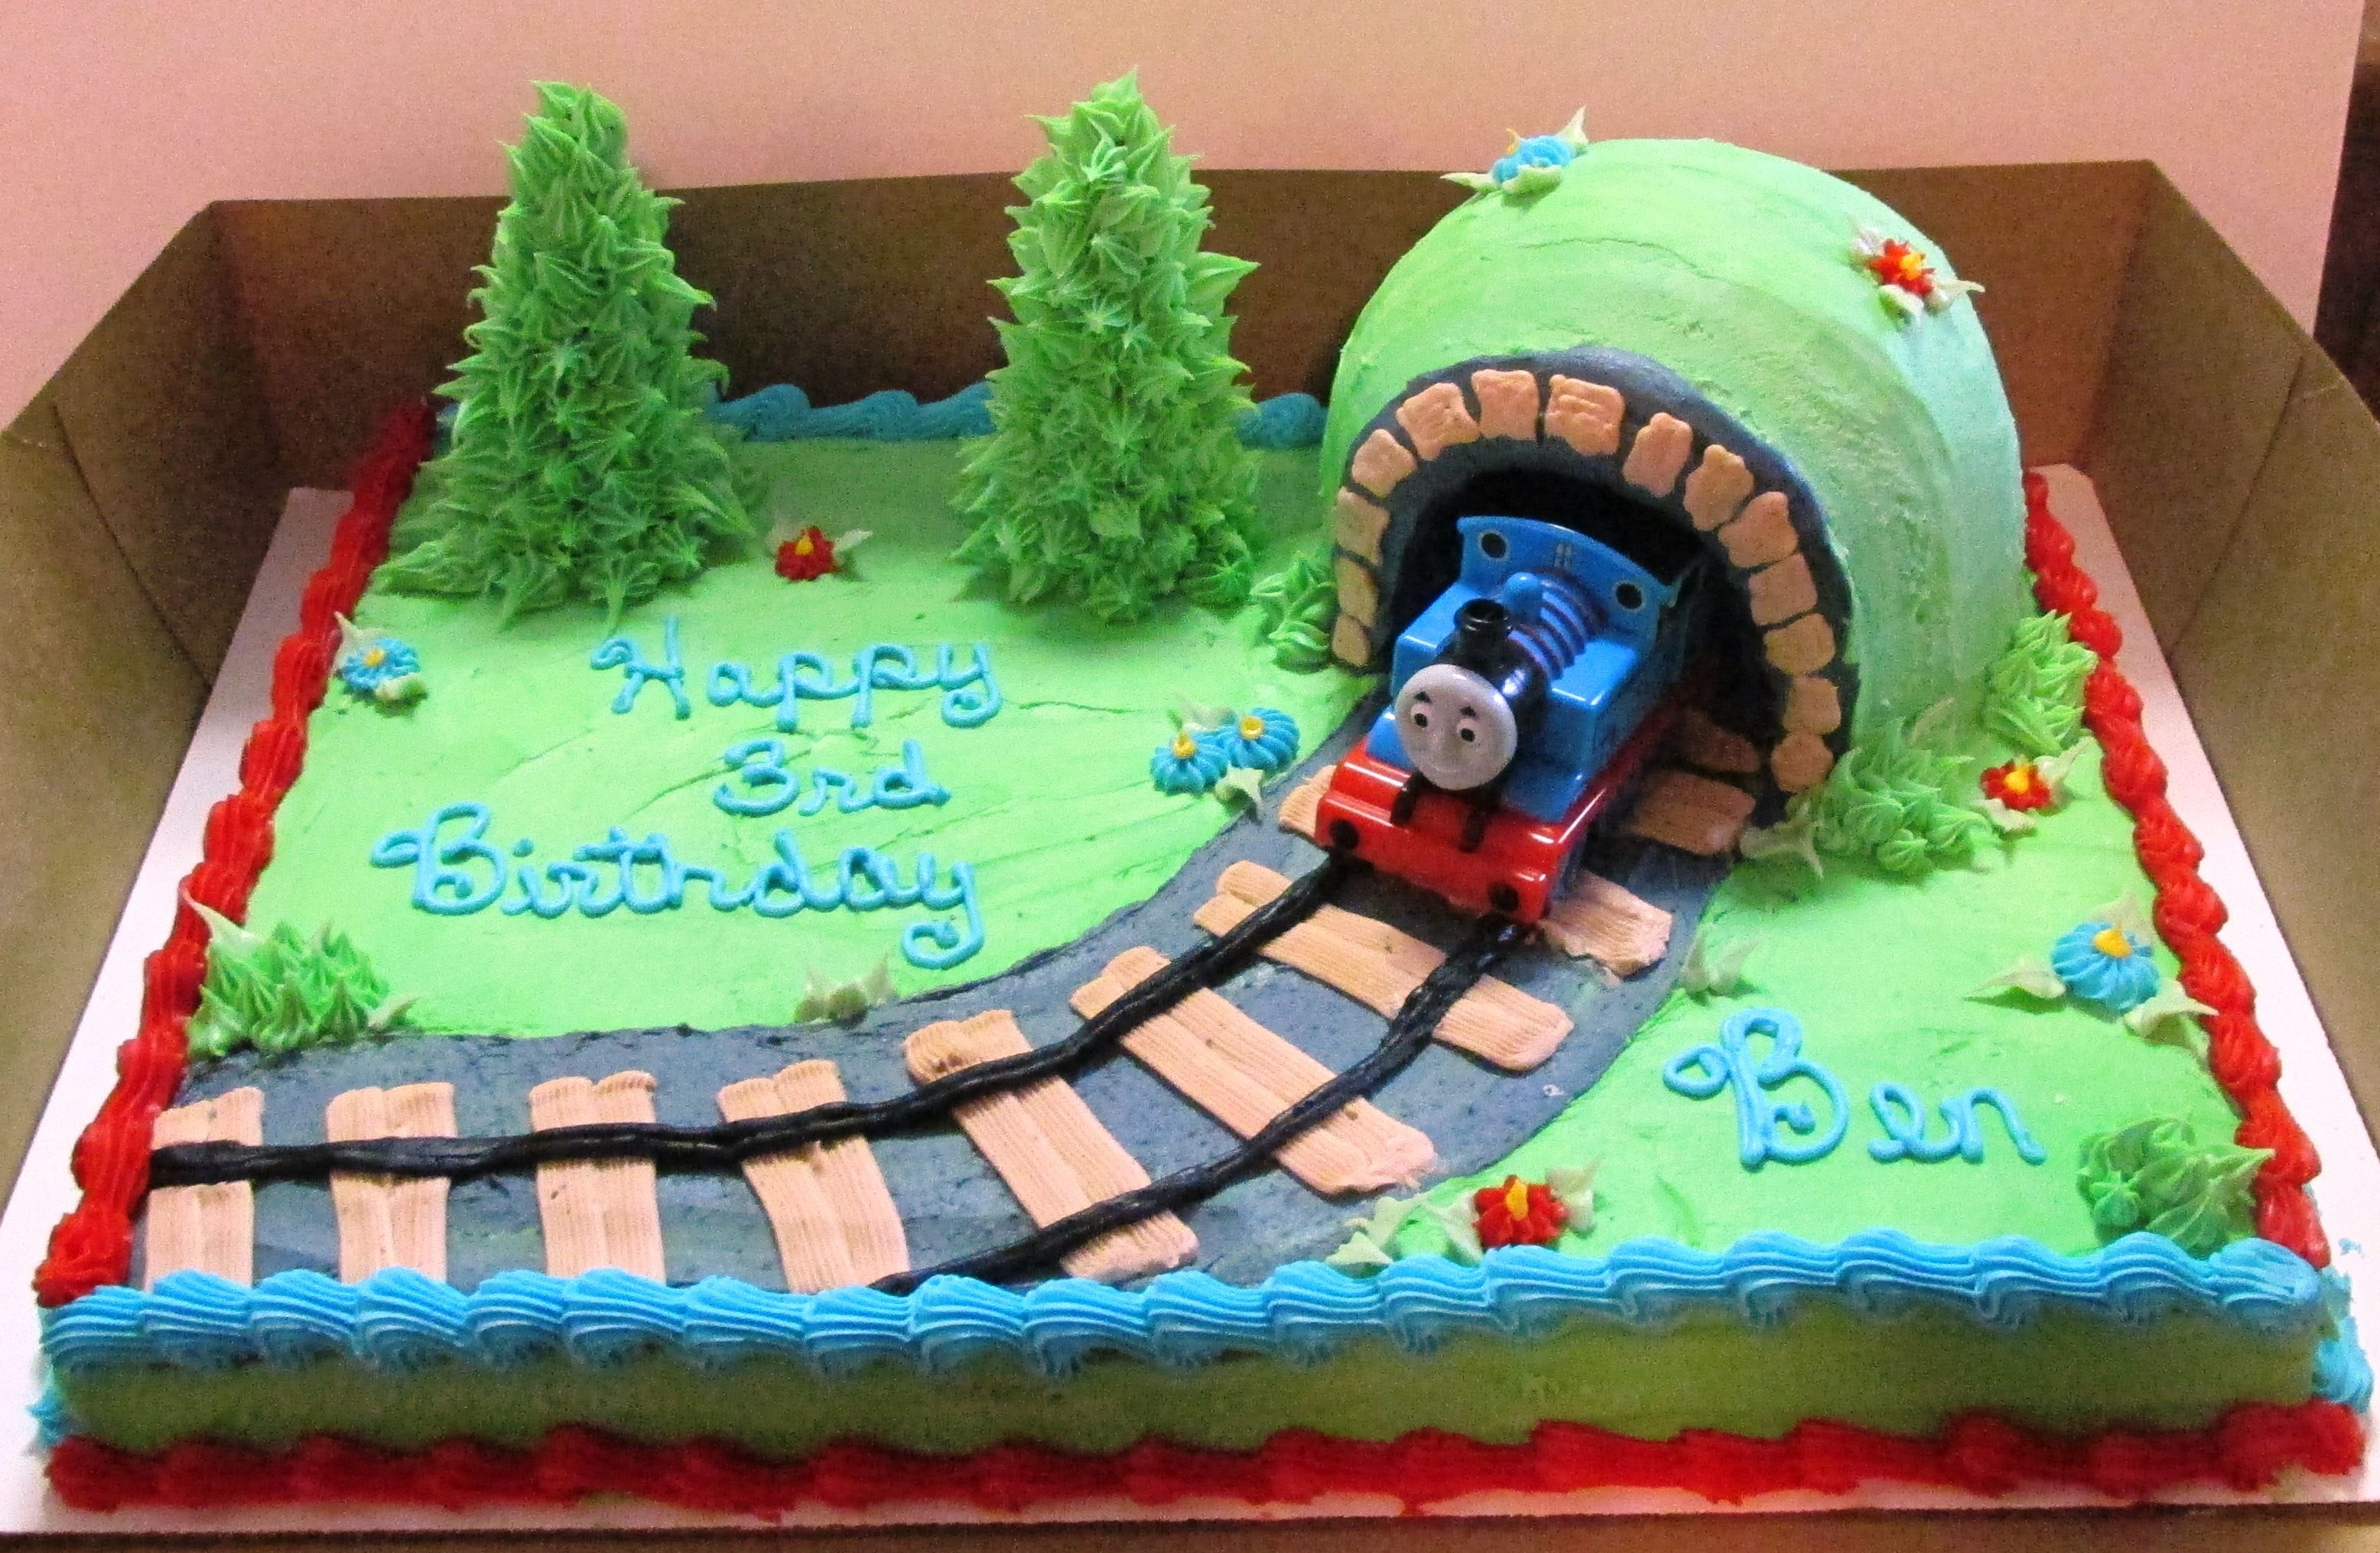 Thomas The Train 1 2 Sheet Cake Birthday Sheet Cakes 3rd Birthday Cakes Thomas Train Cake